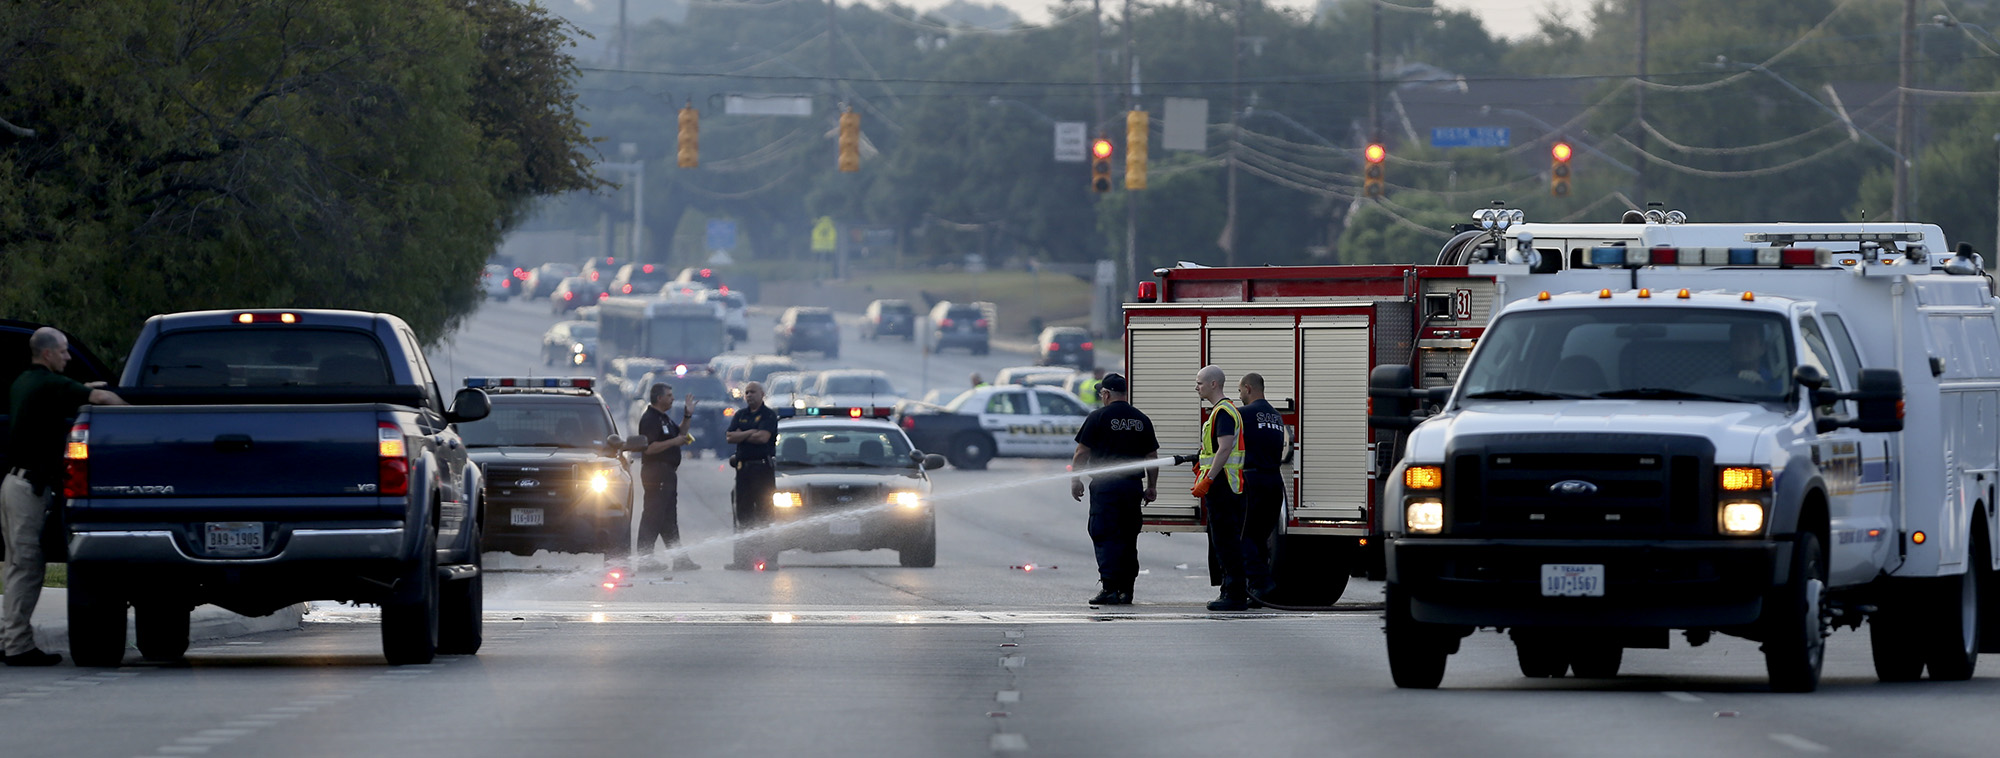 Pedestrian Killed In North Side Car Accident Was 48 San